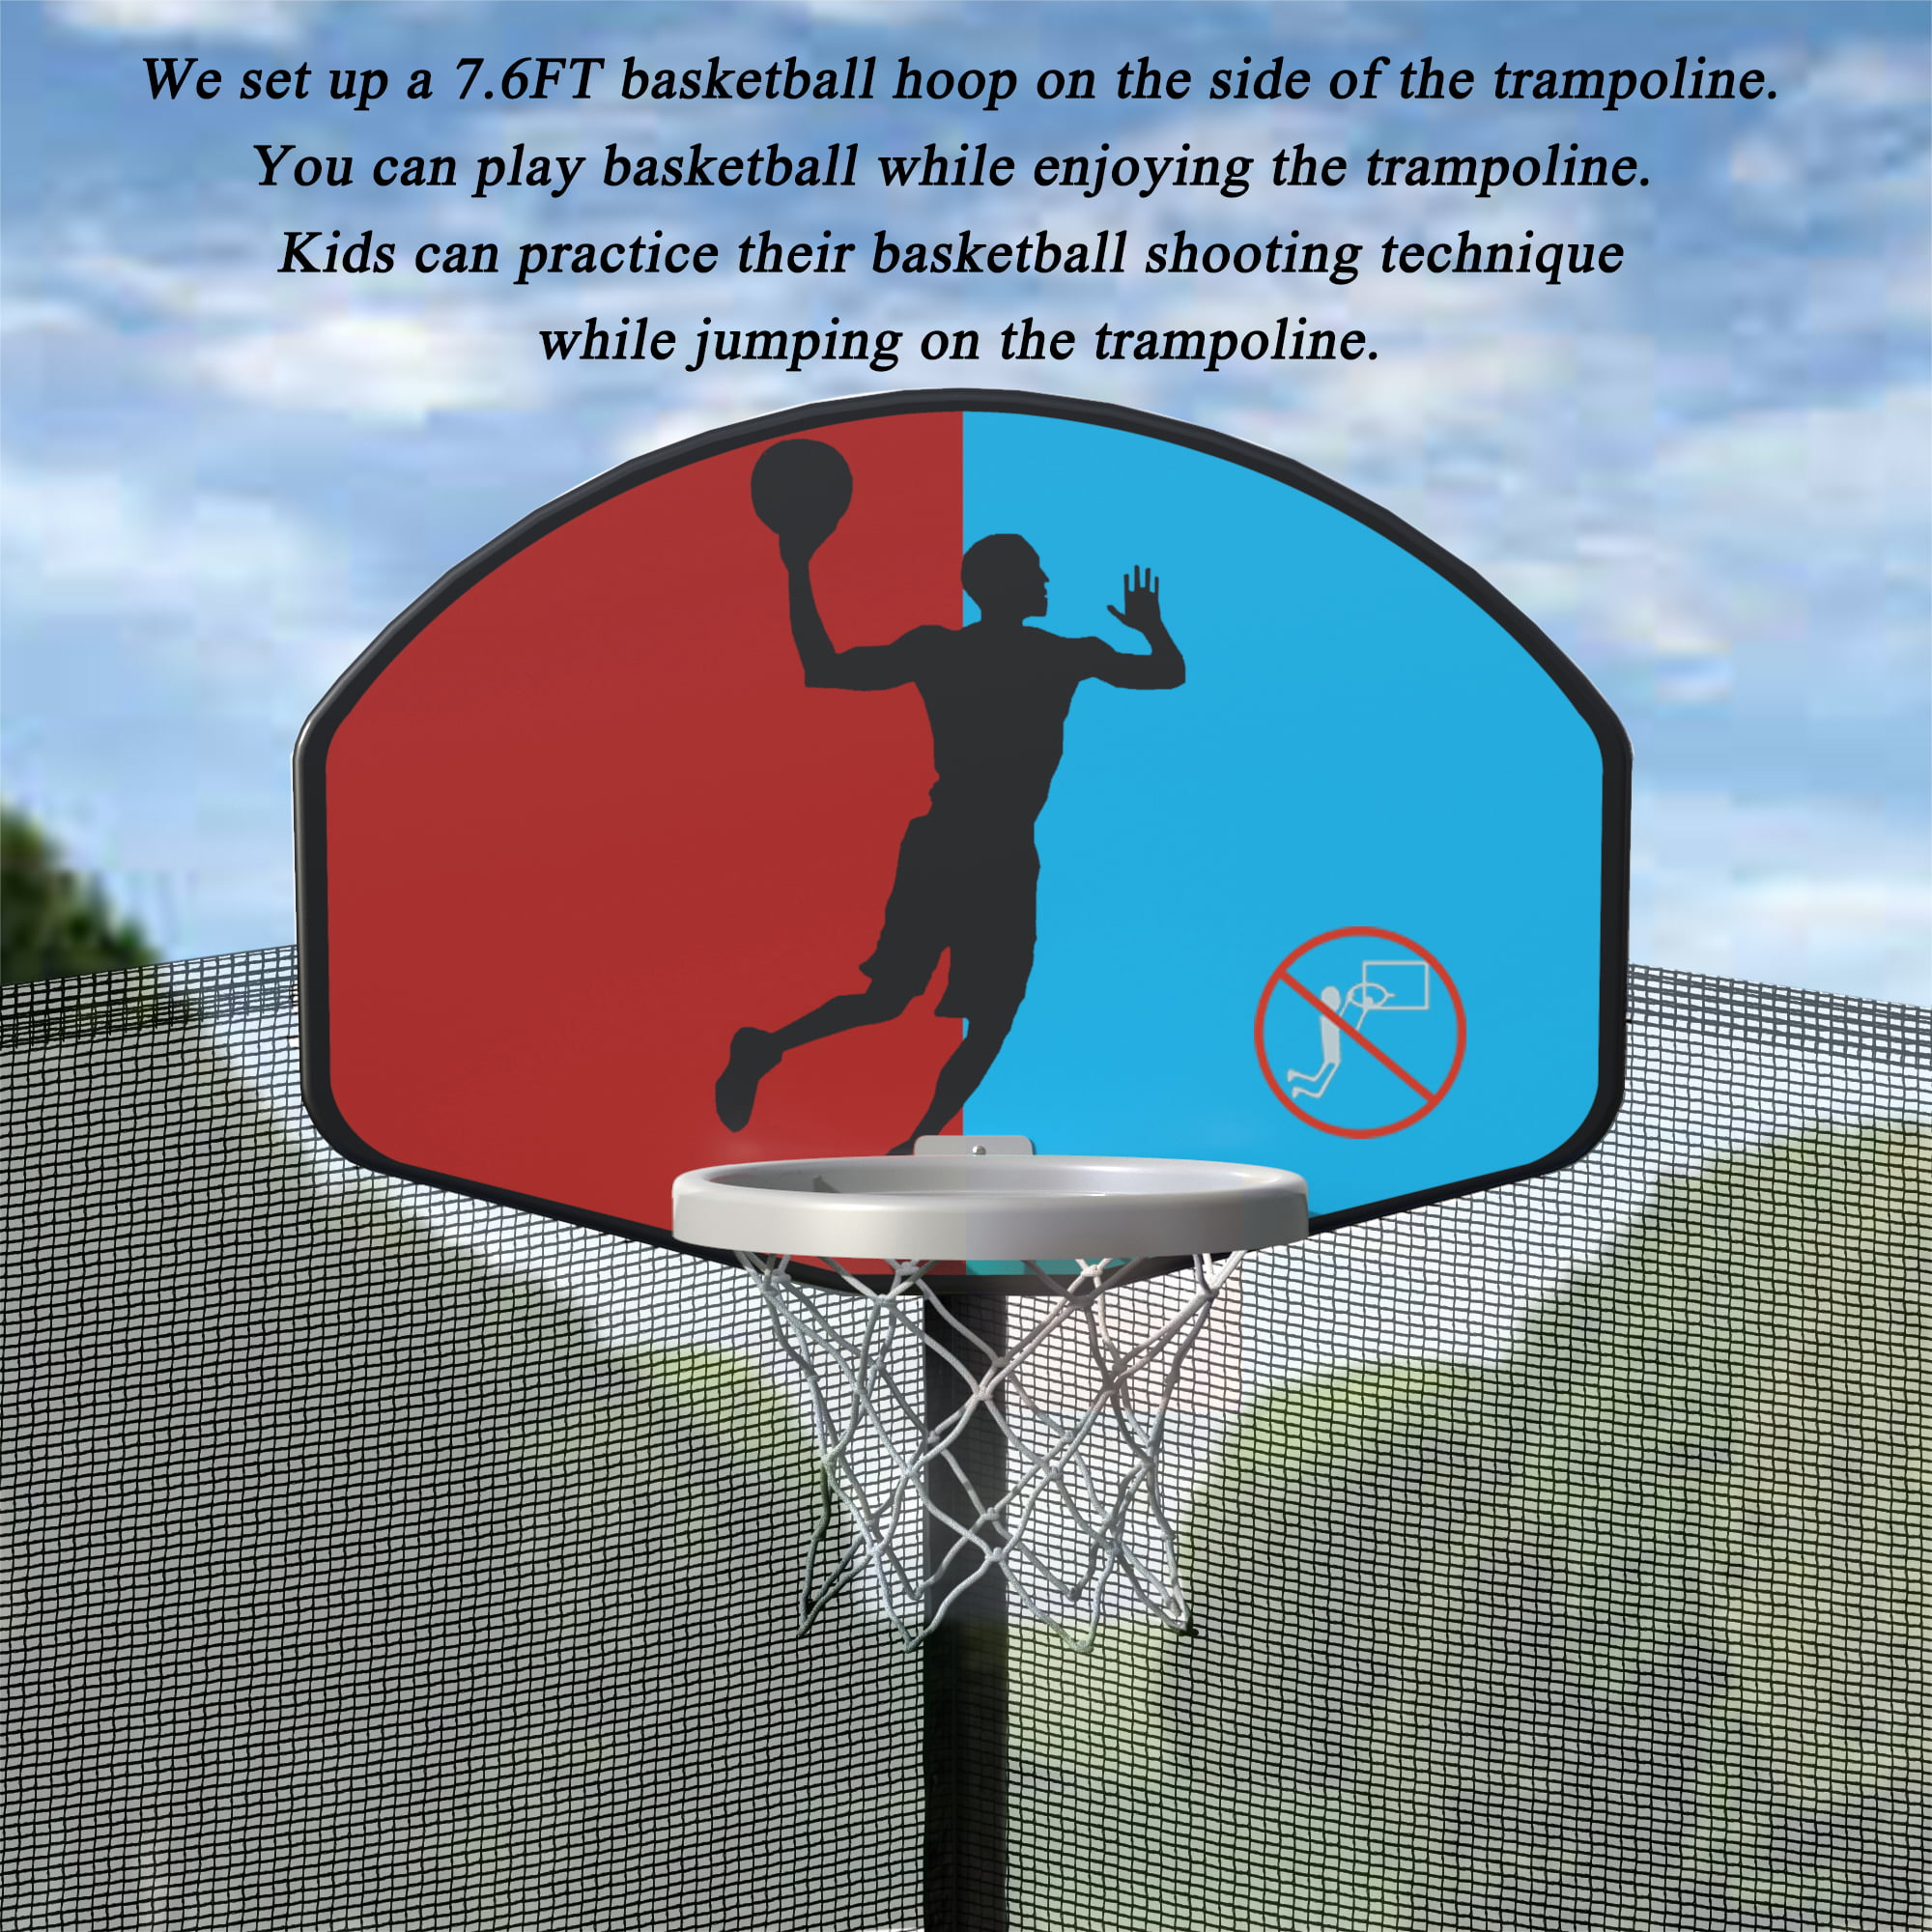 15FT Round Trampoline With Safety Enclosure, Basketball Hoop And Ladder